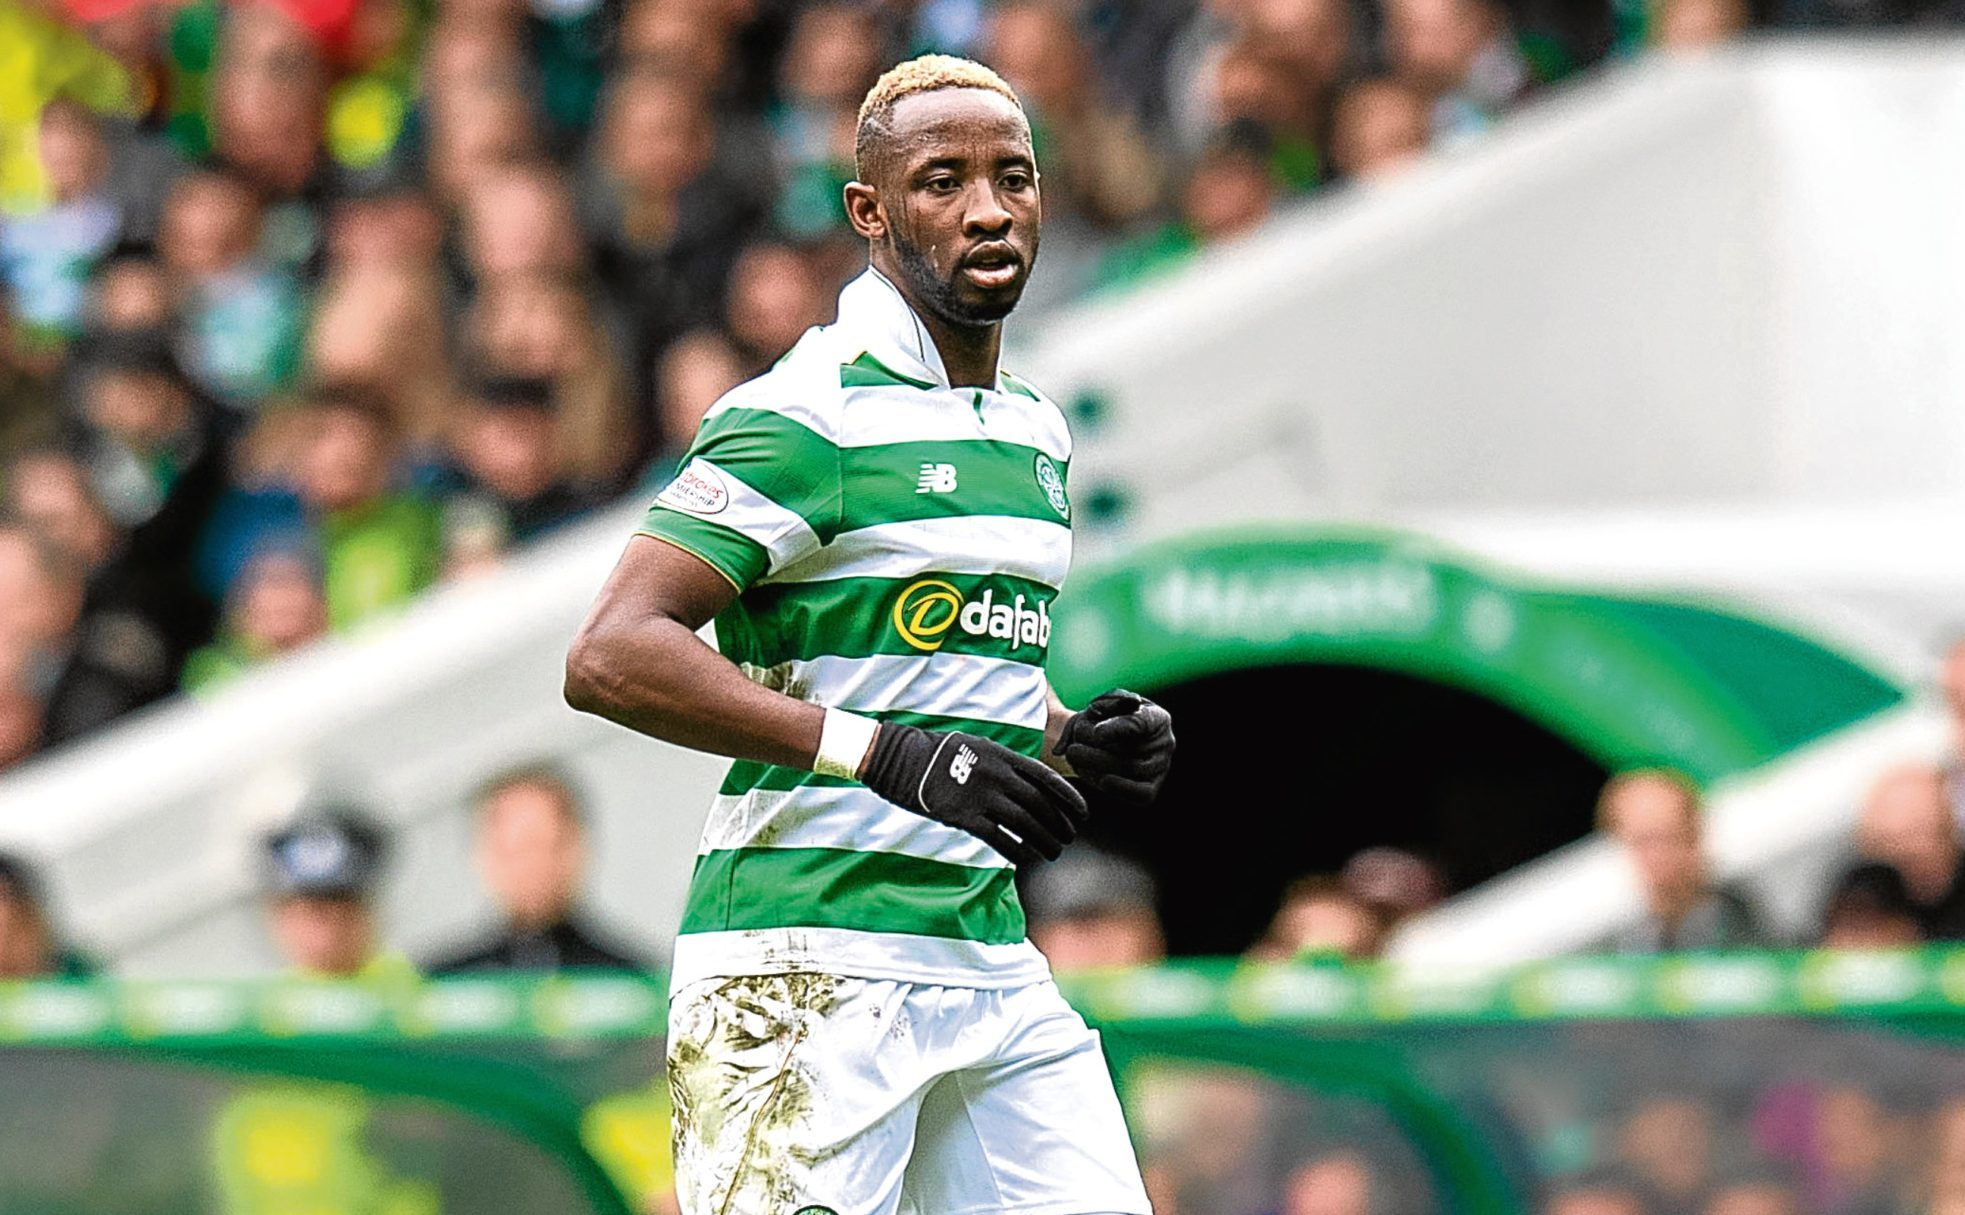 Celtic's Moussa Dembele in action (SNS Group)Celtic's Moussa Dembele in action (SNS Group)